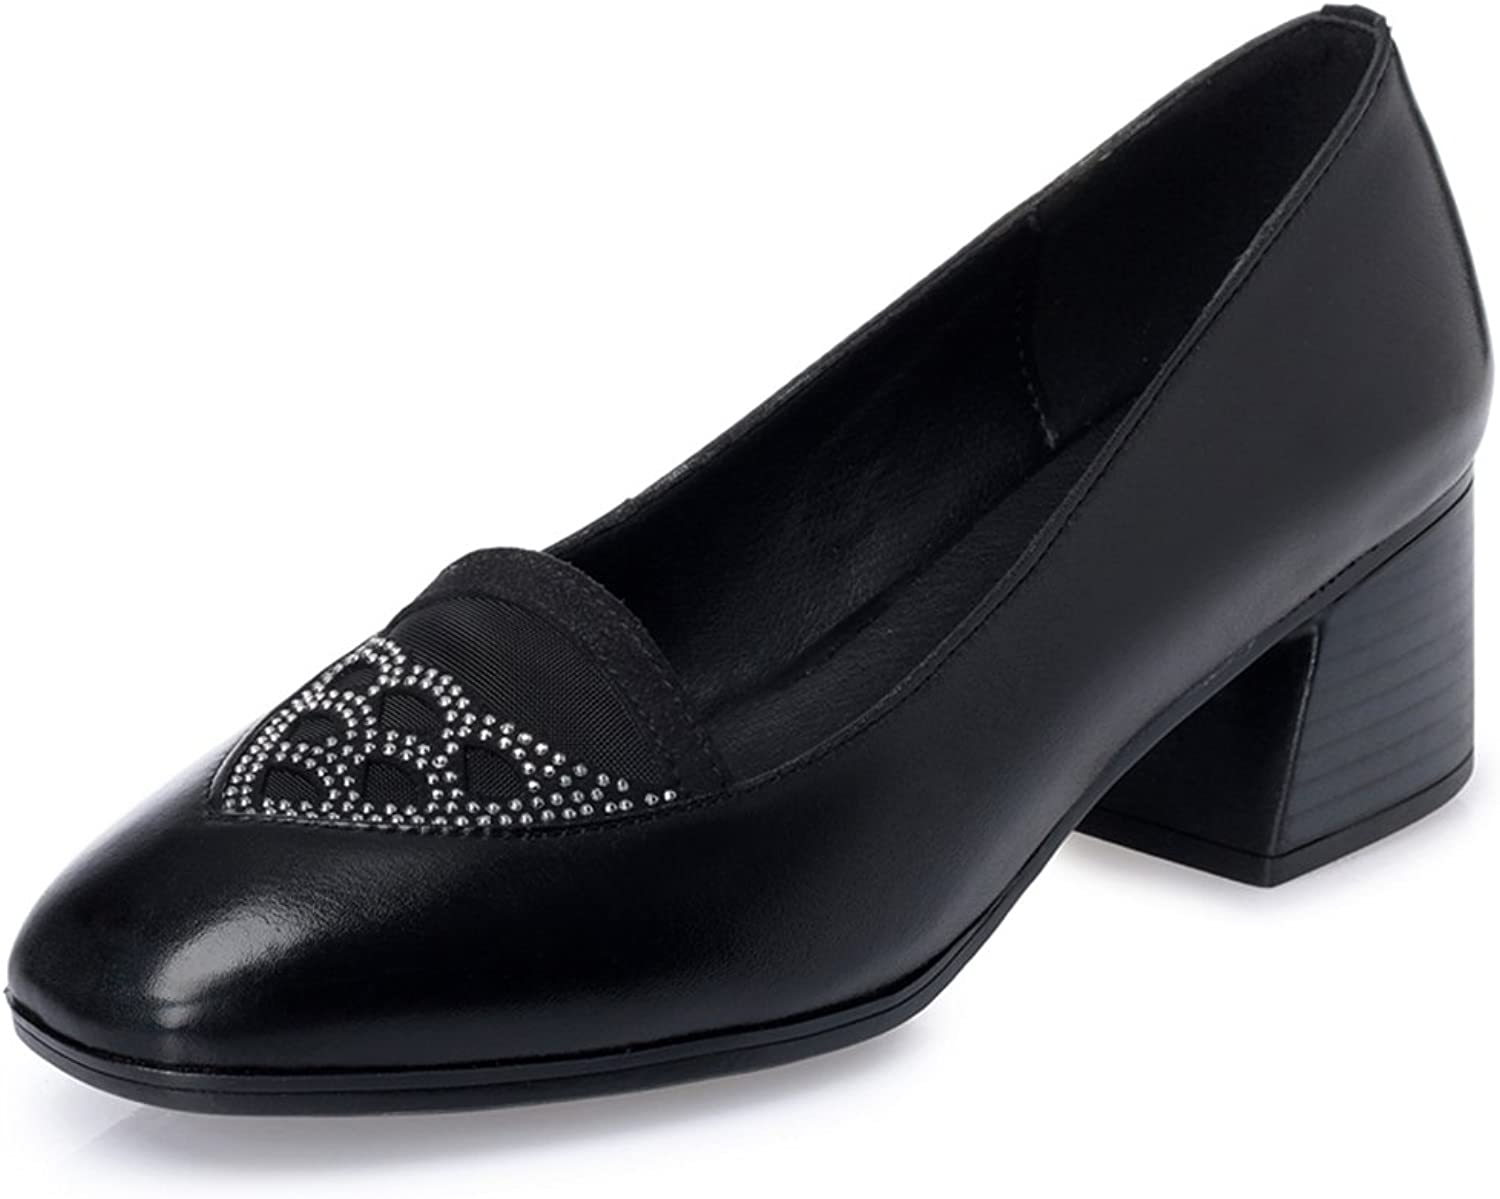 Womens Genuine Leather Rhinestone Hollow Out Slip On Work shoes Loafer